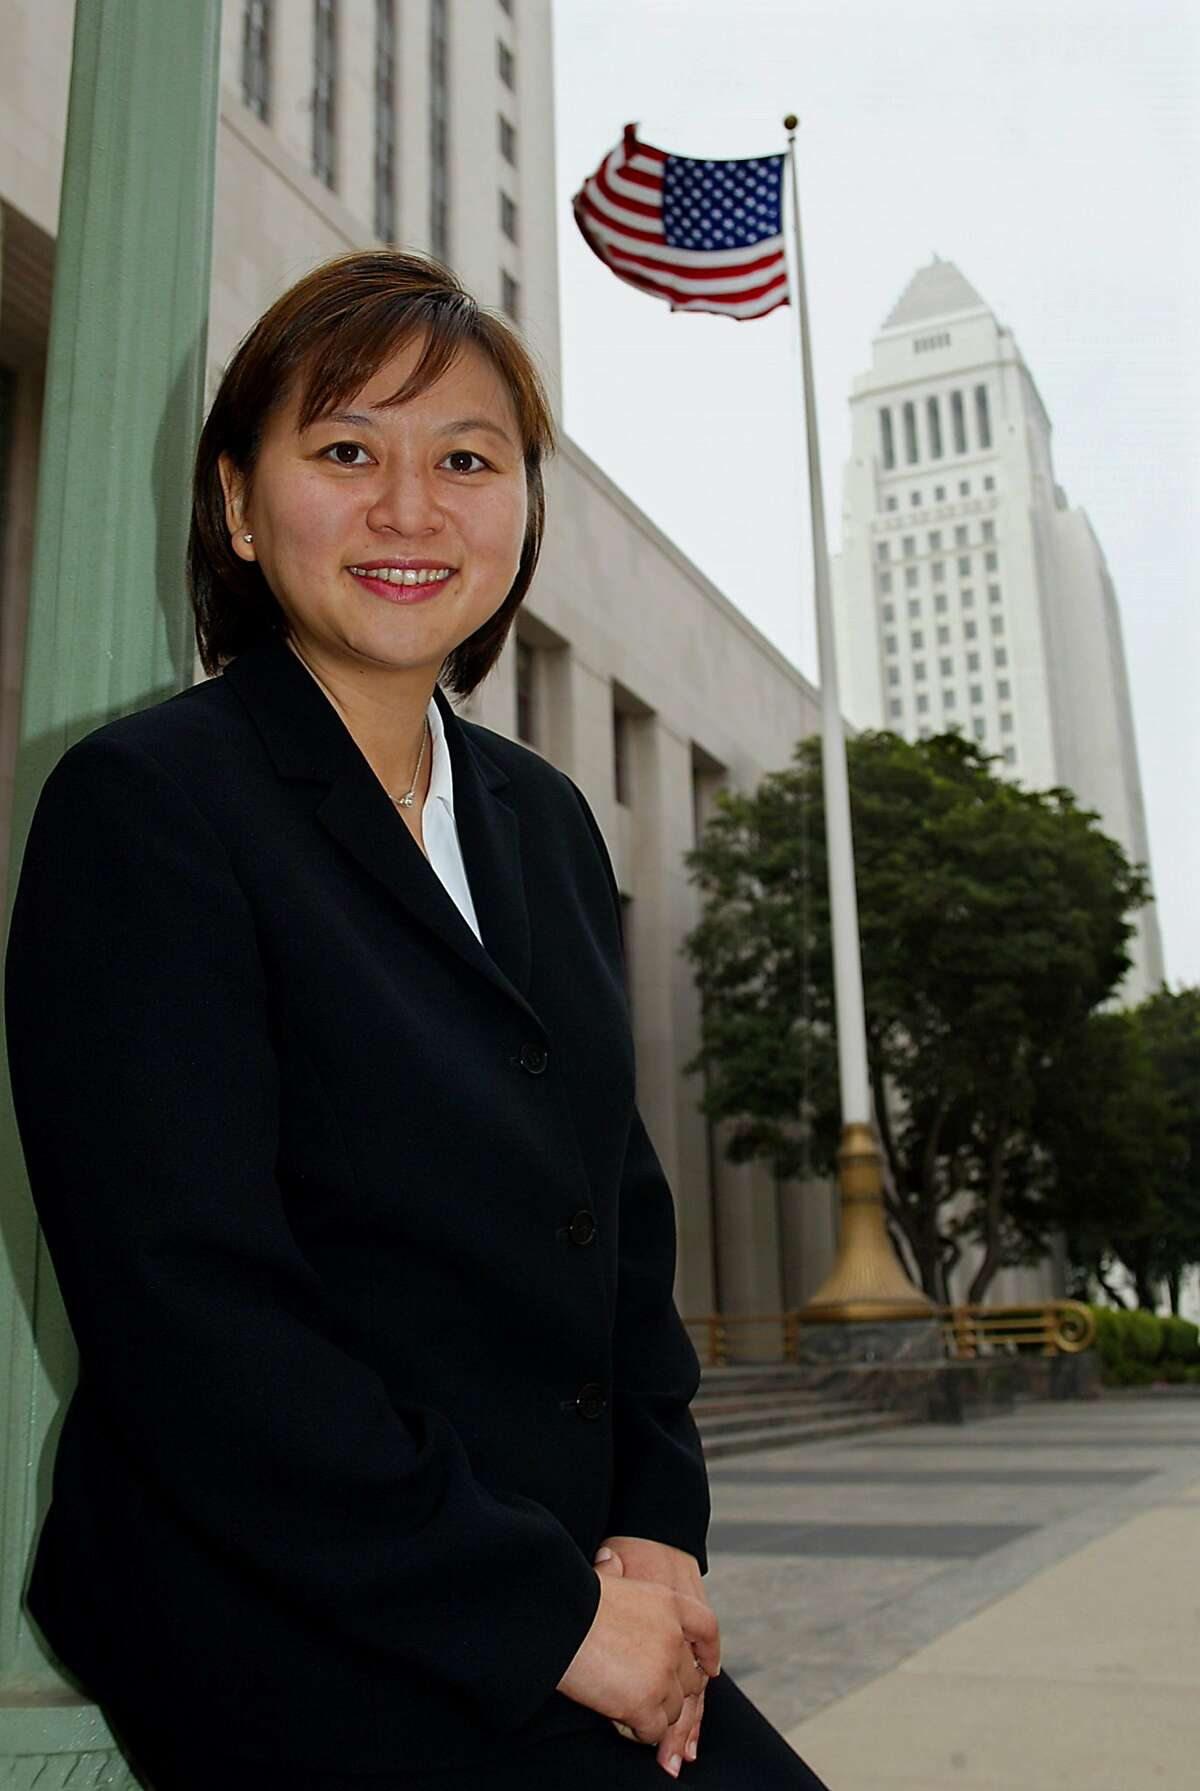 President Obama has nominated Jacqueline Nguyen, who two years ago became the first Vietnamese American woman to serve as a federal judge, to the United States Court of Appeals for the 9th Circuit in San Francisco, California.